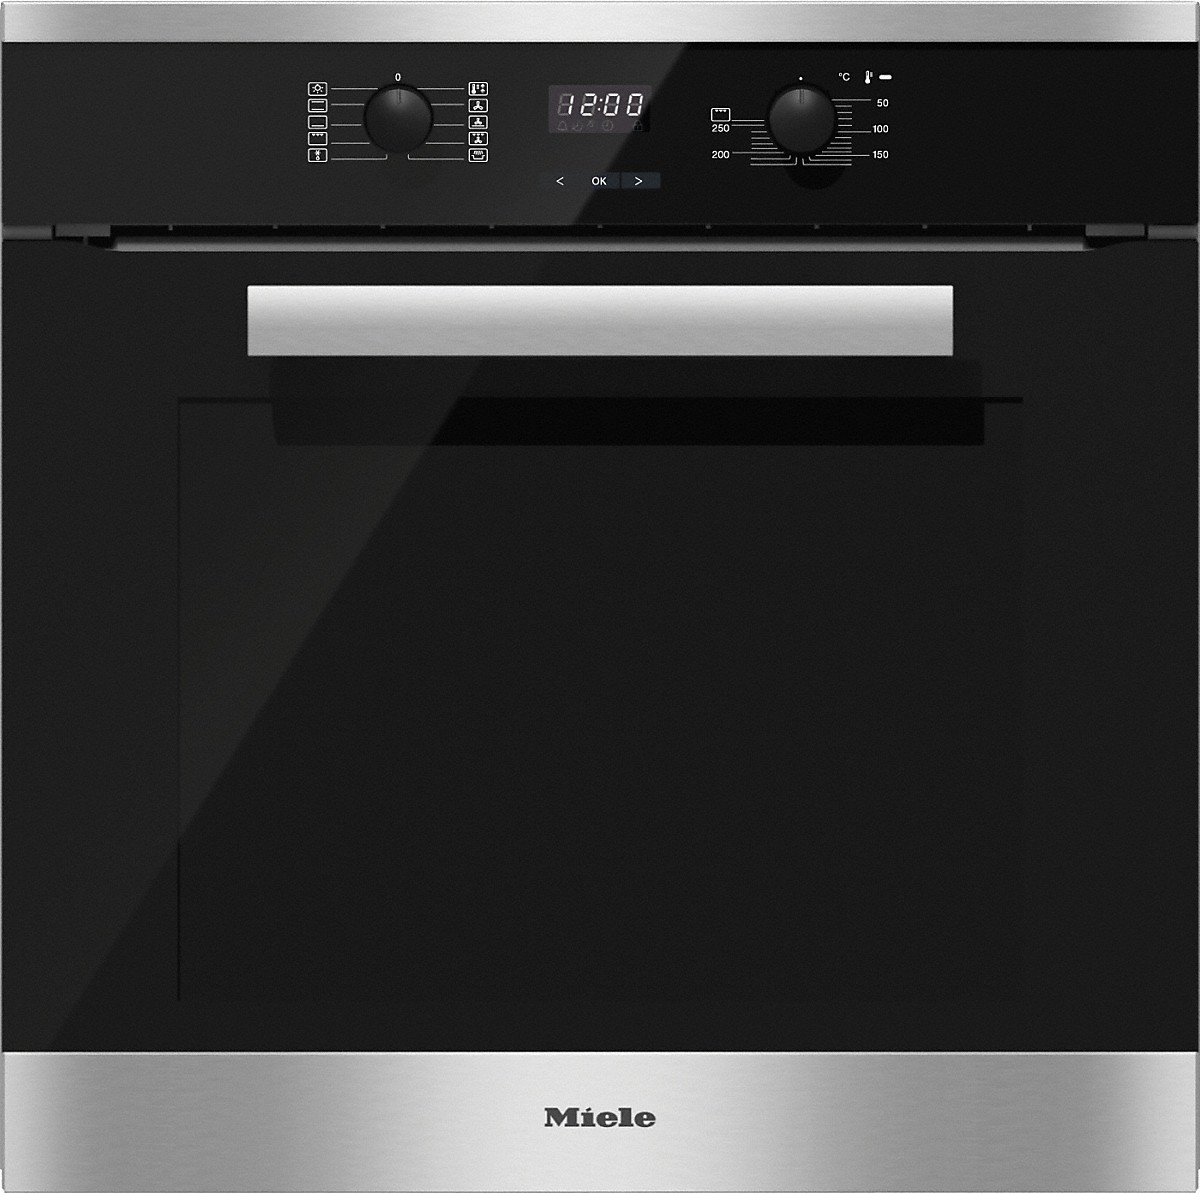 H 2661-1 B - Oven with convenience functions and XL oven compartment.-